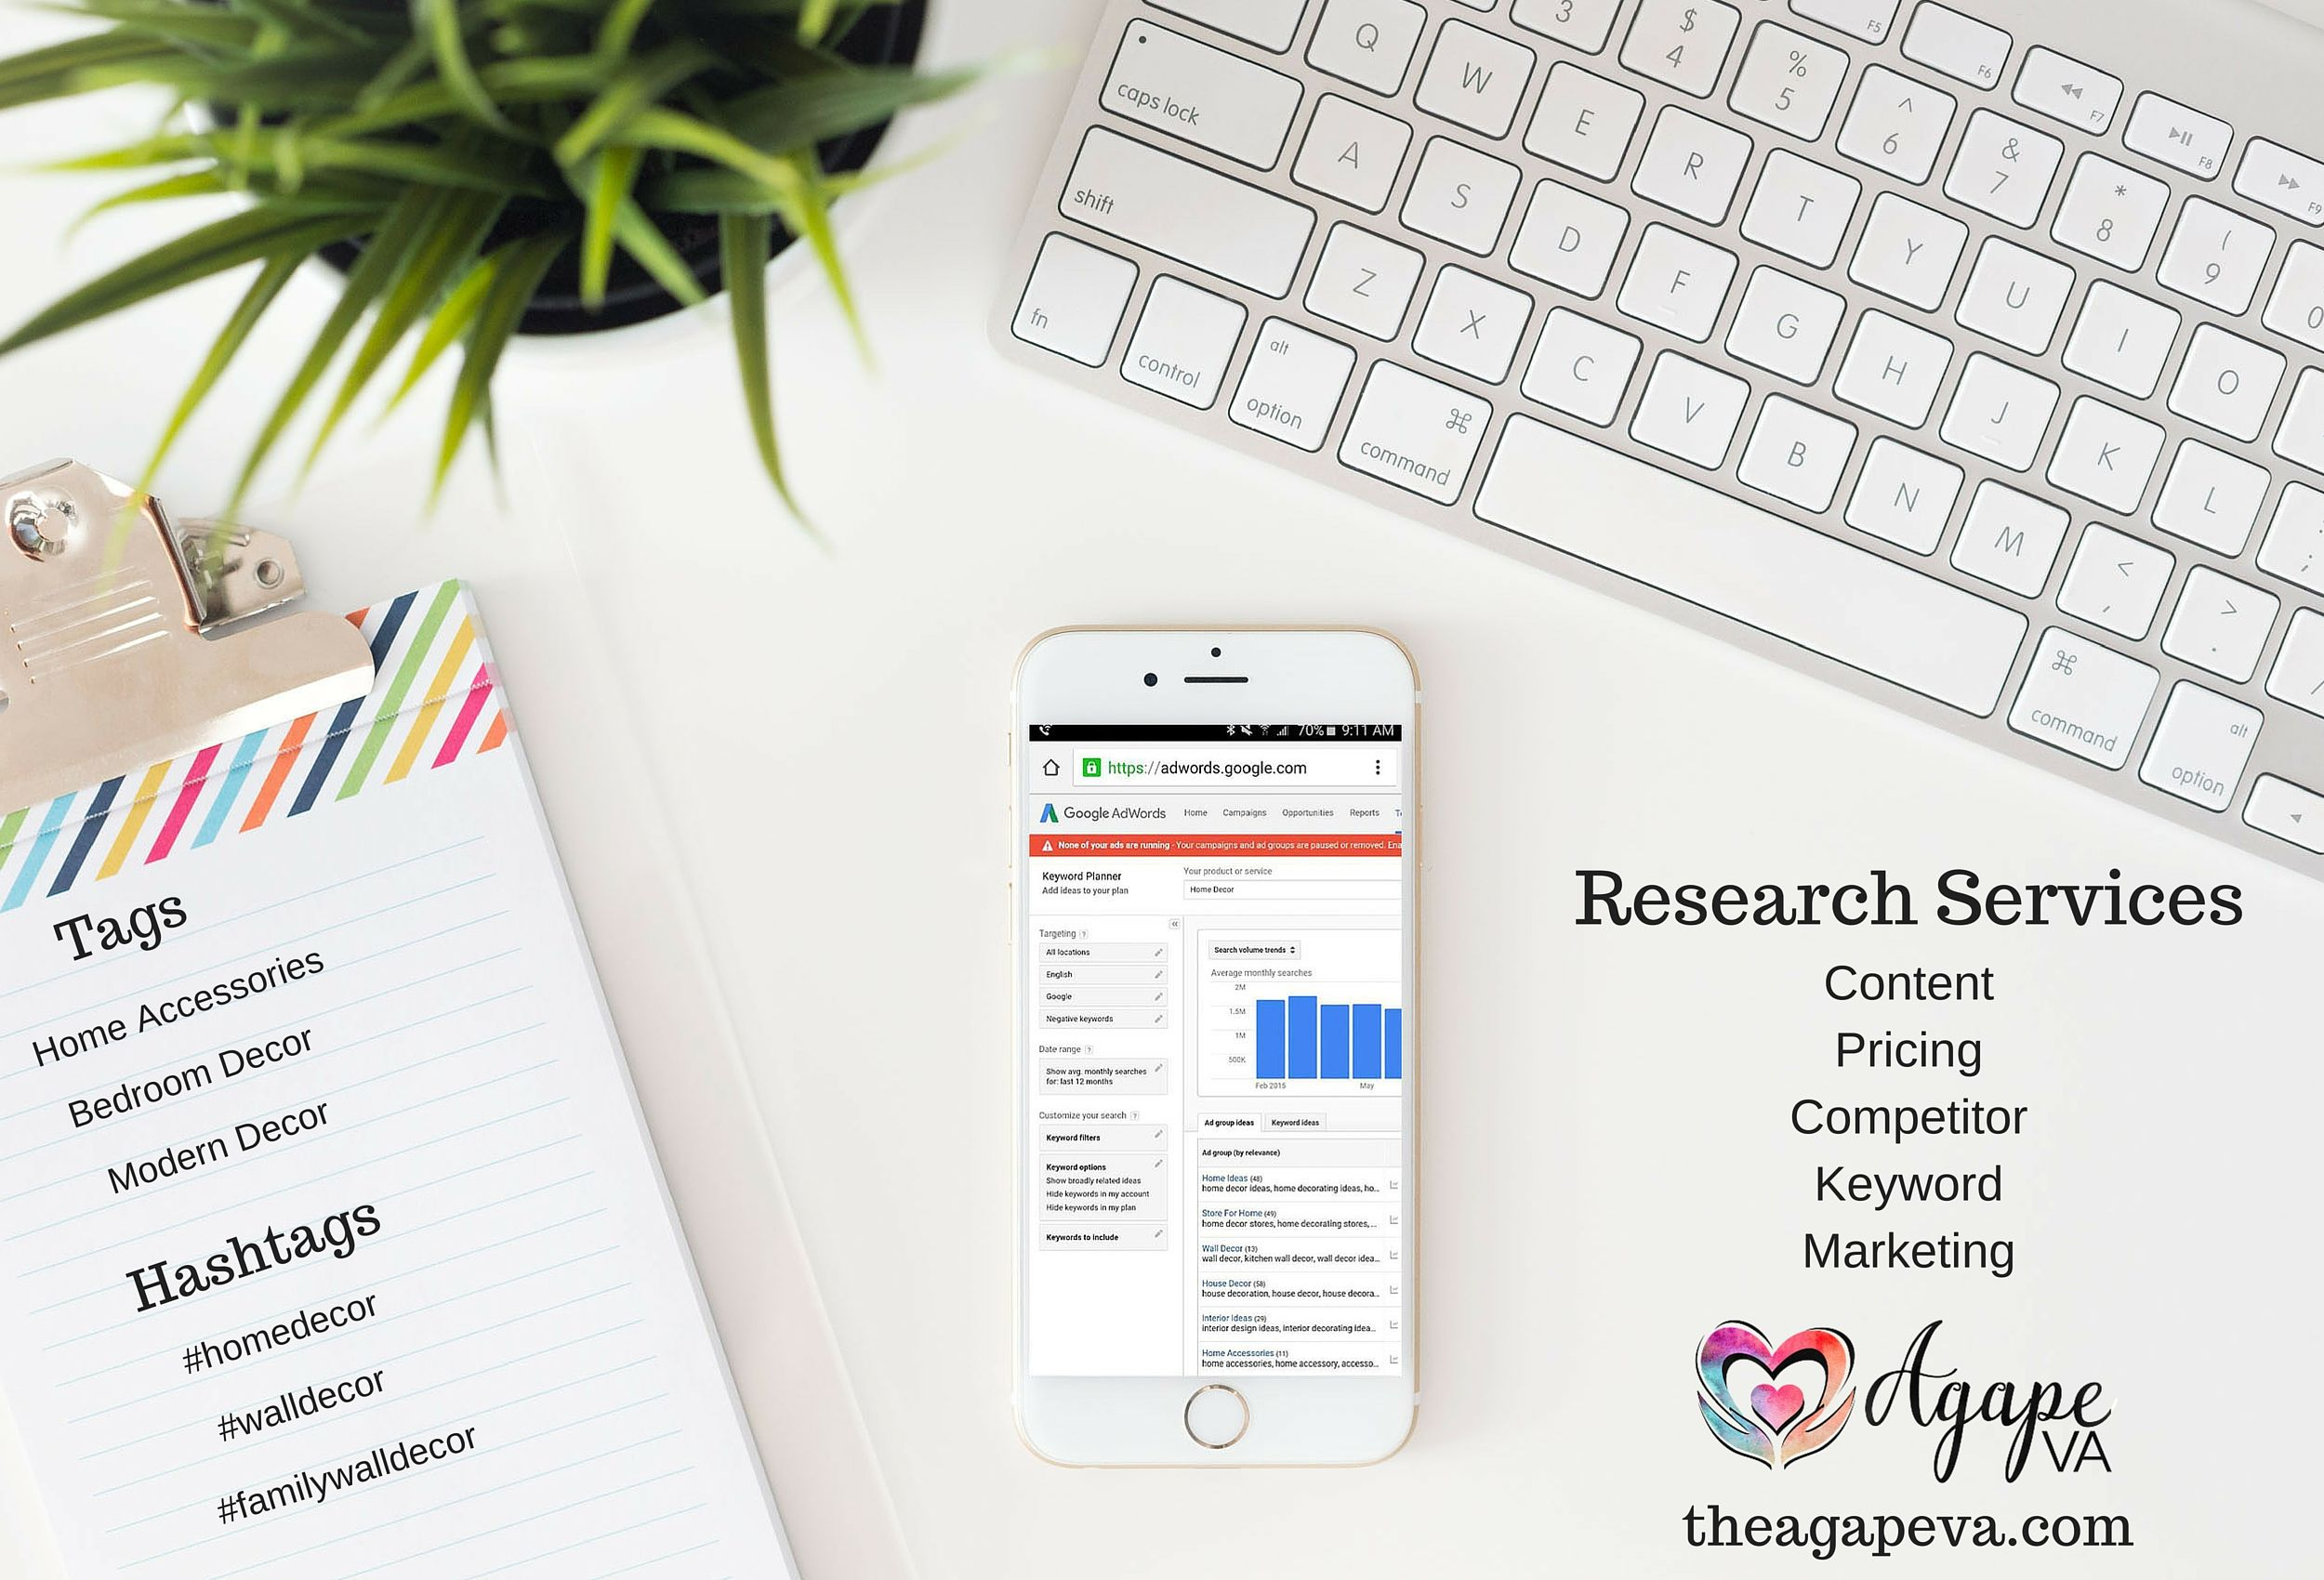 Flash Friday Sale Do You Need Help Researching Keywords